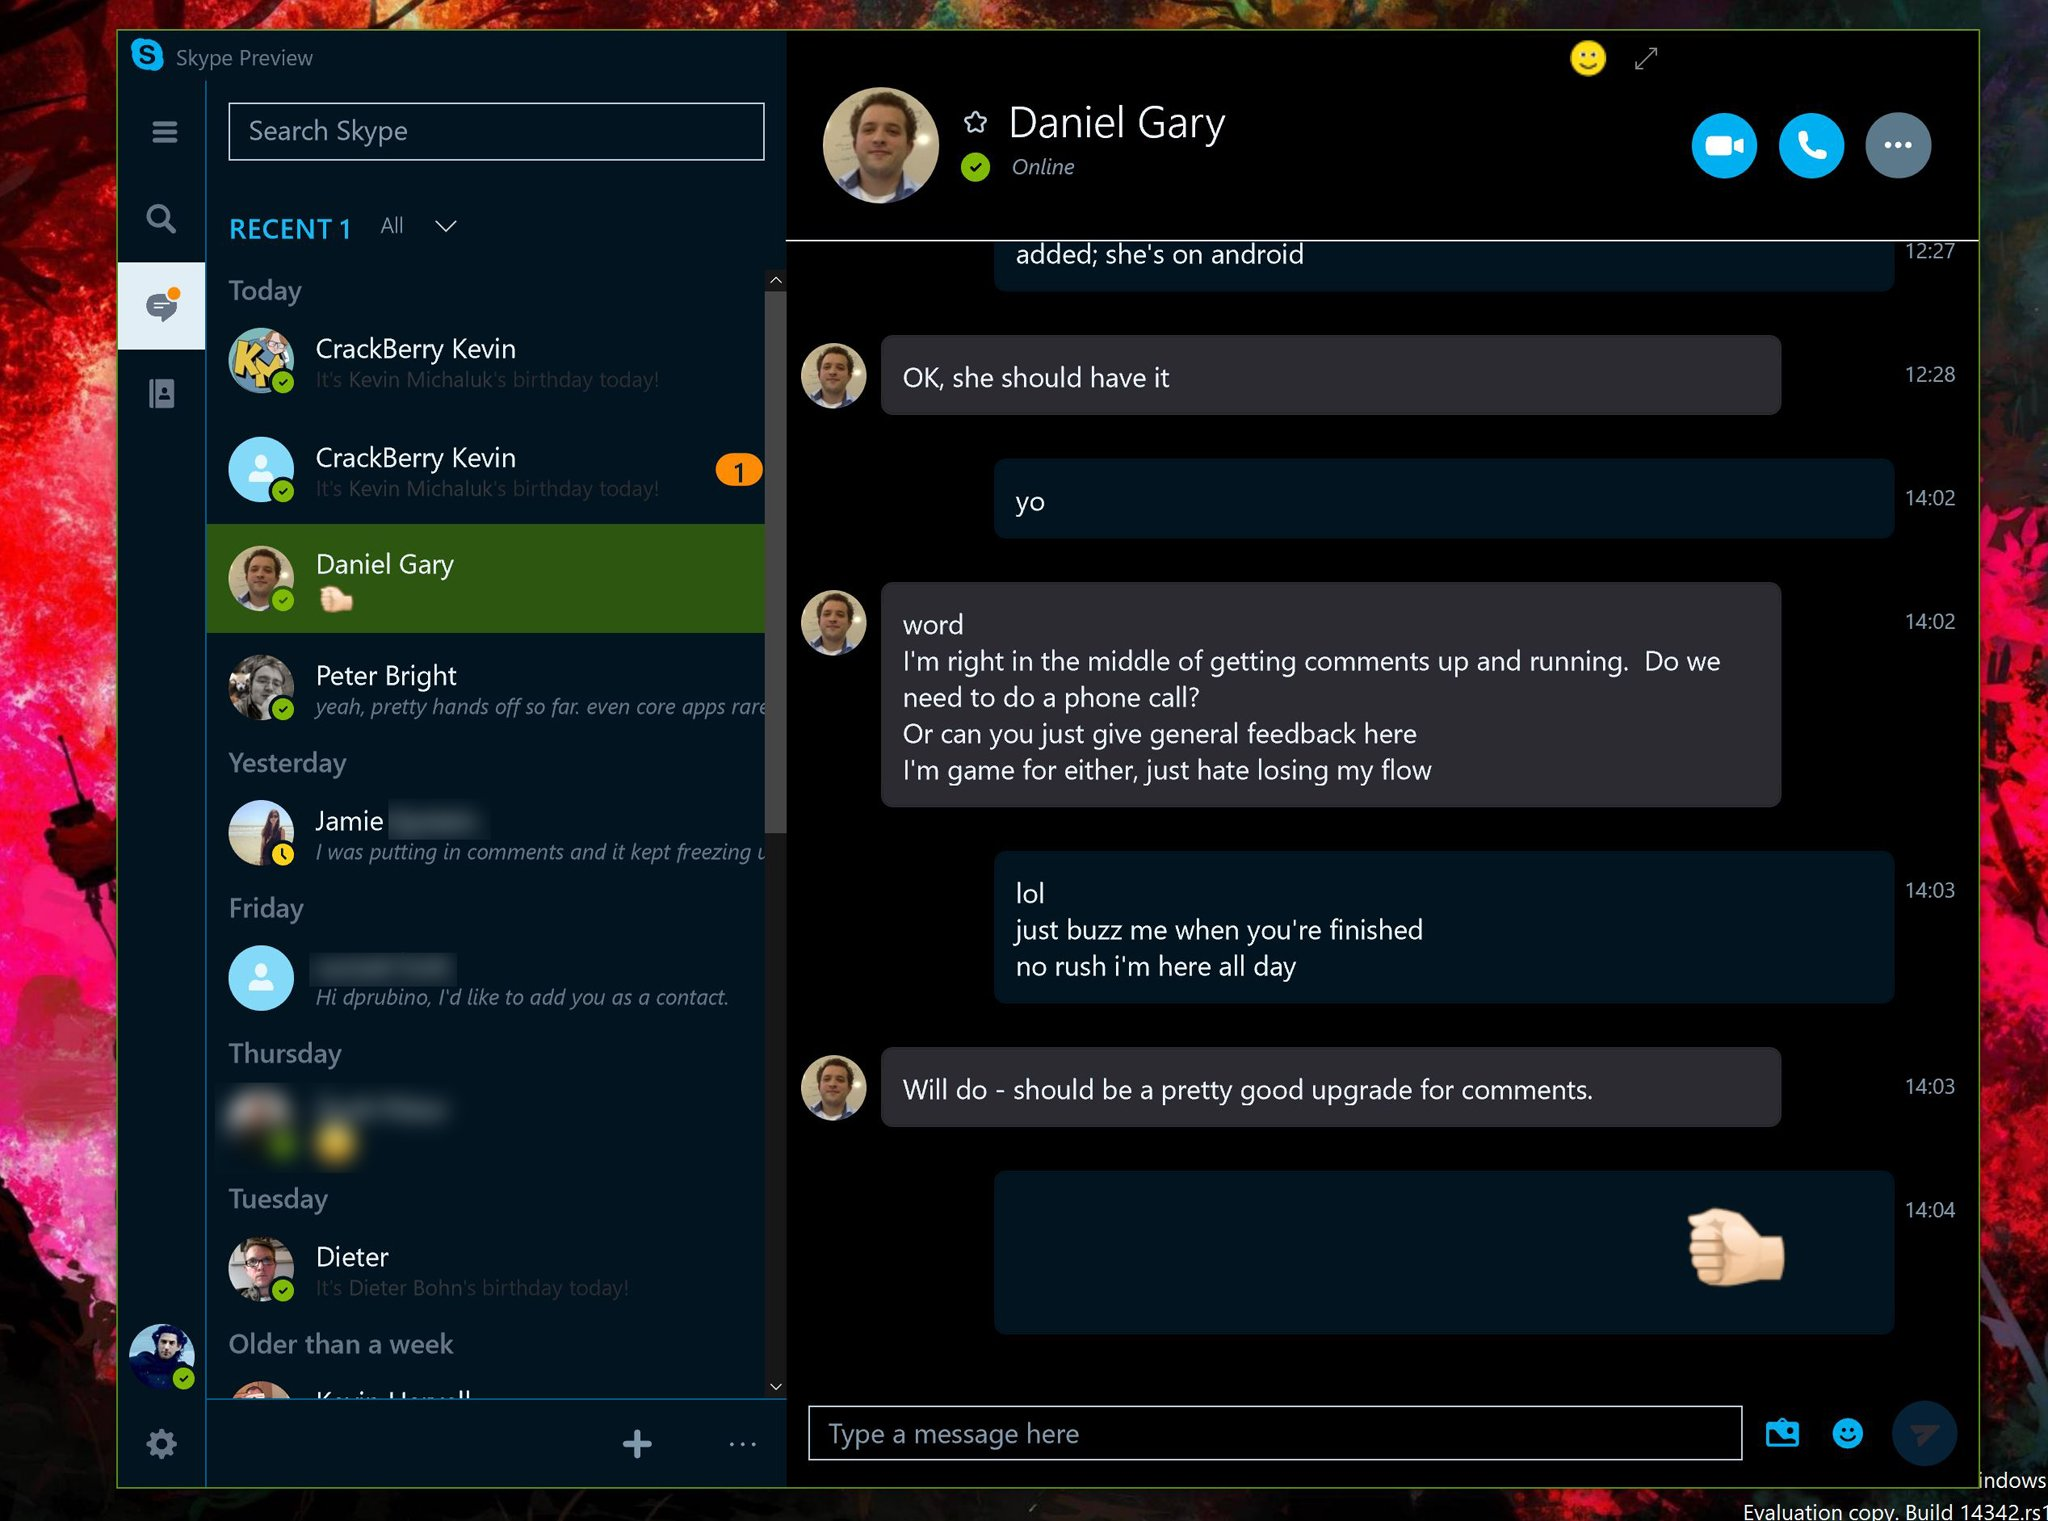 My Dal Login Skype Preview For Windows 10 Updated With Dark Theme And